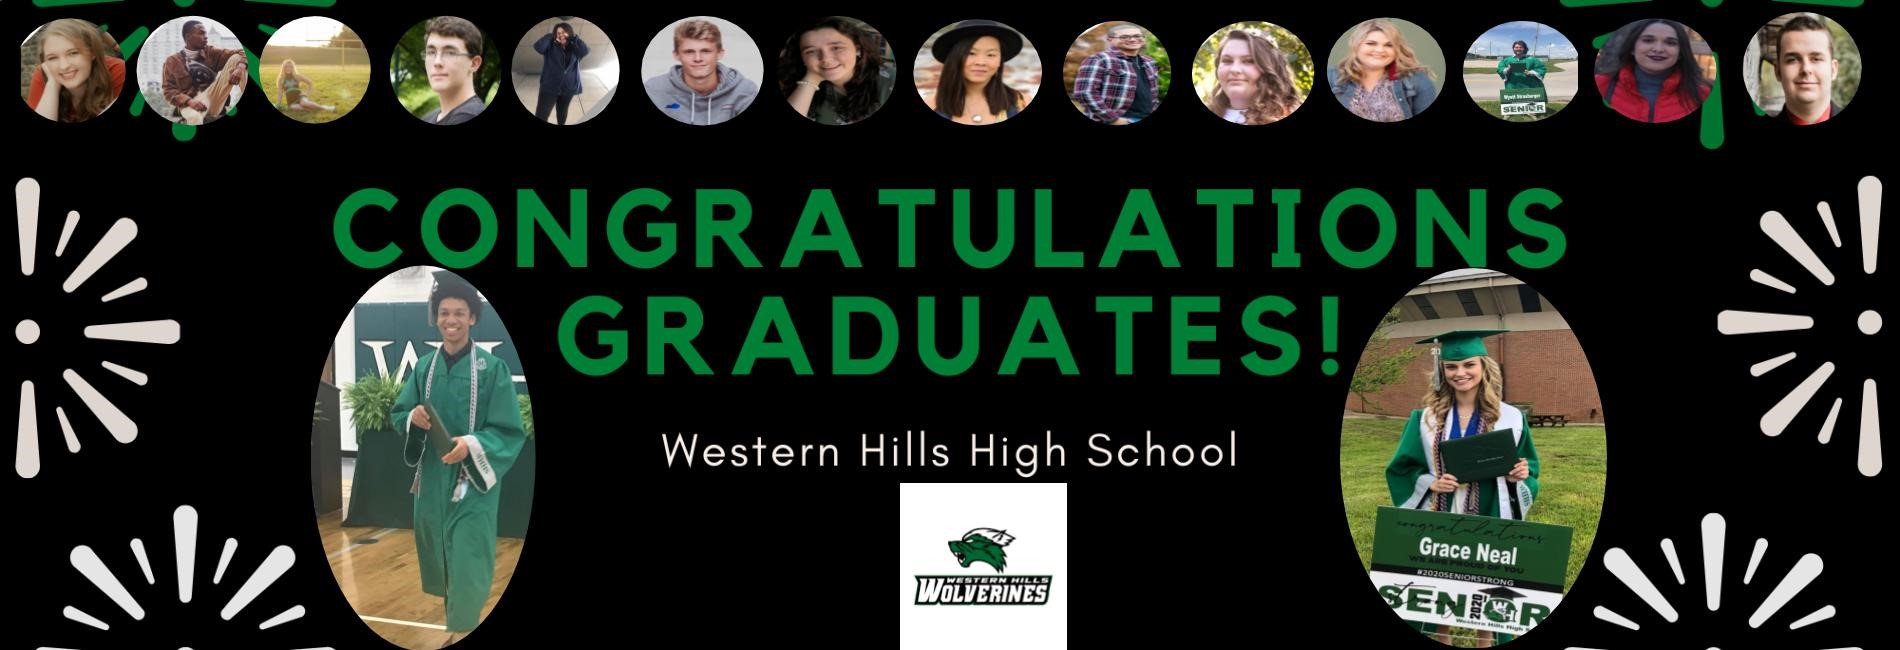 Western Hills High School Class of 2020